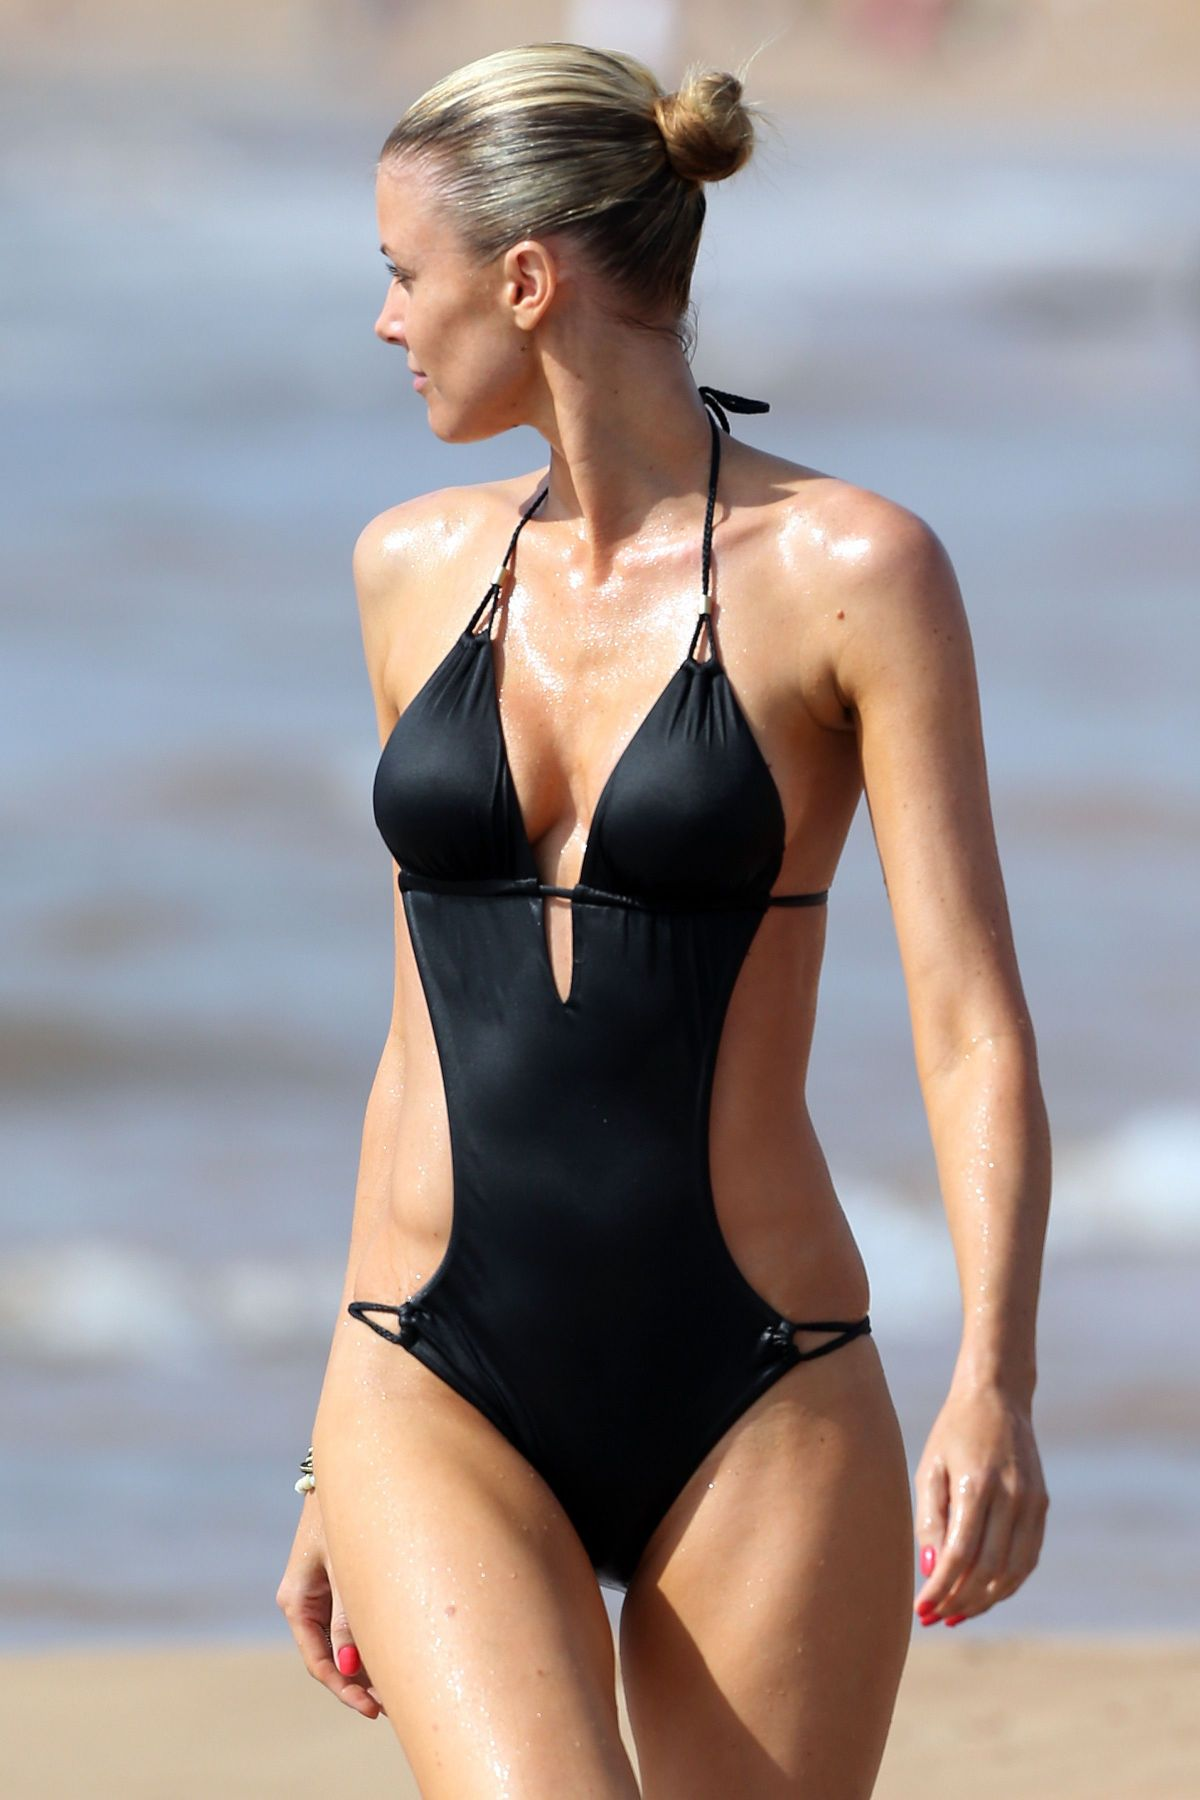 paige-butcher-in-swimsuit-at-a-beach-in-maui_3.jpg - 143.29 KB